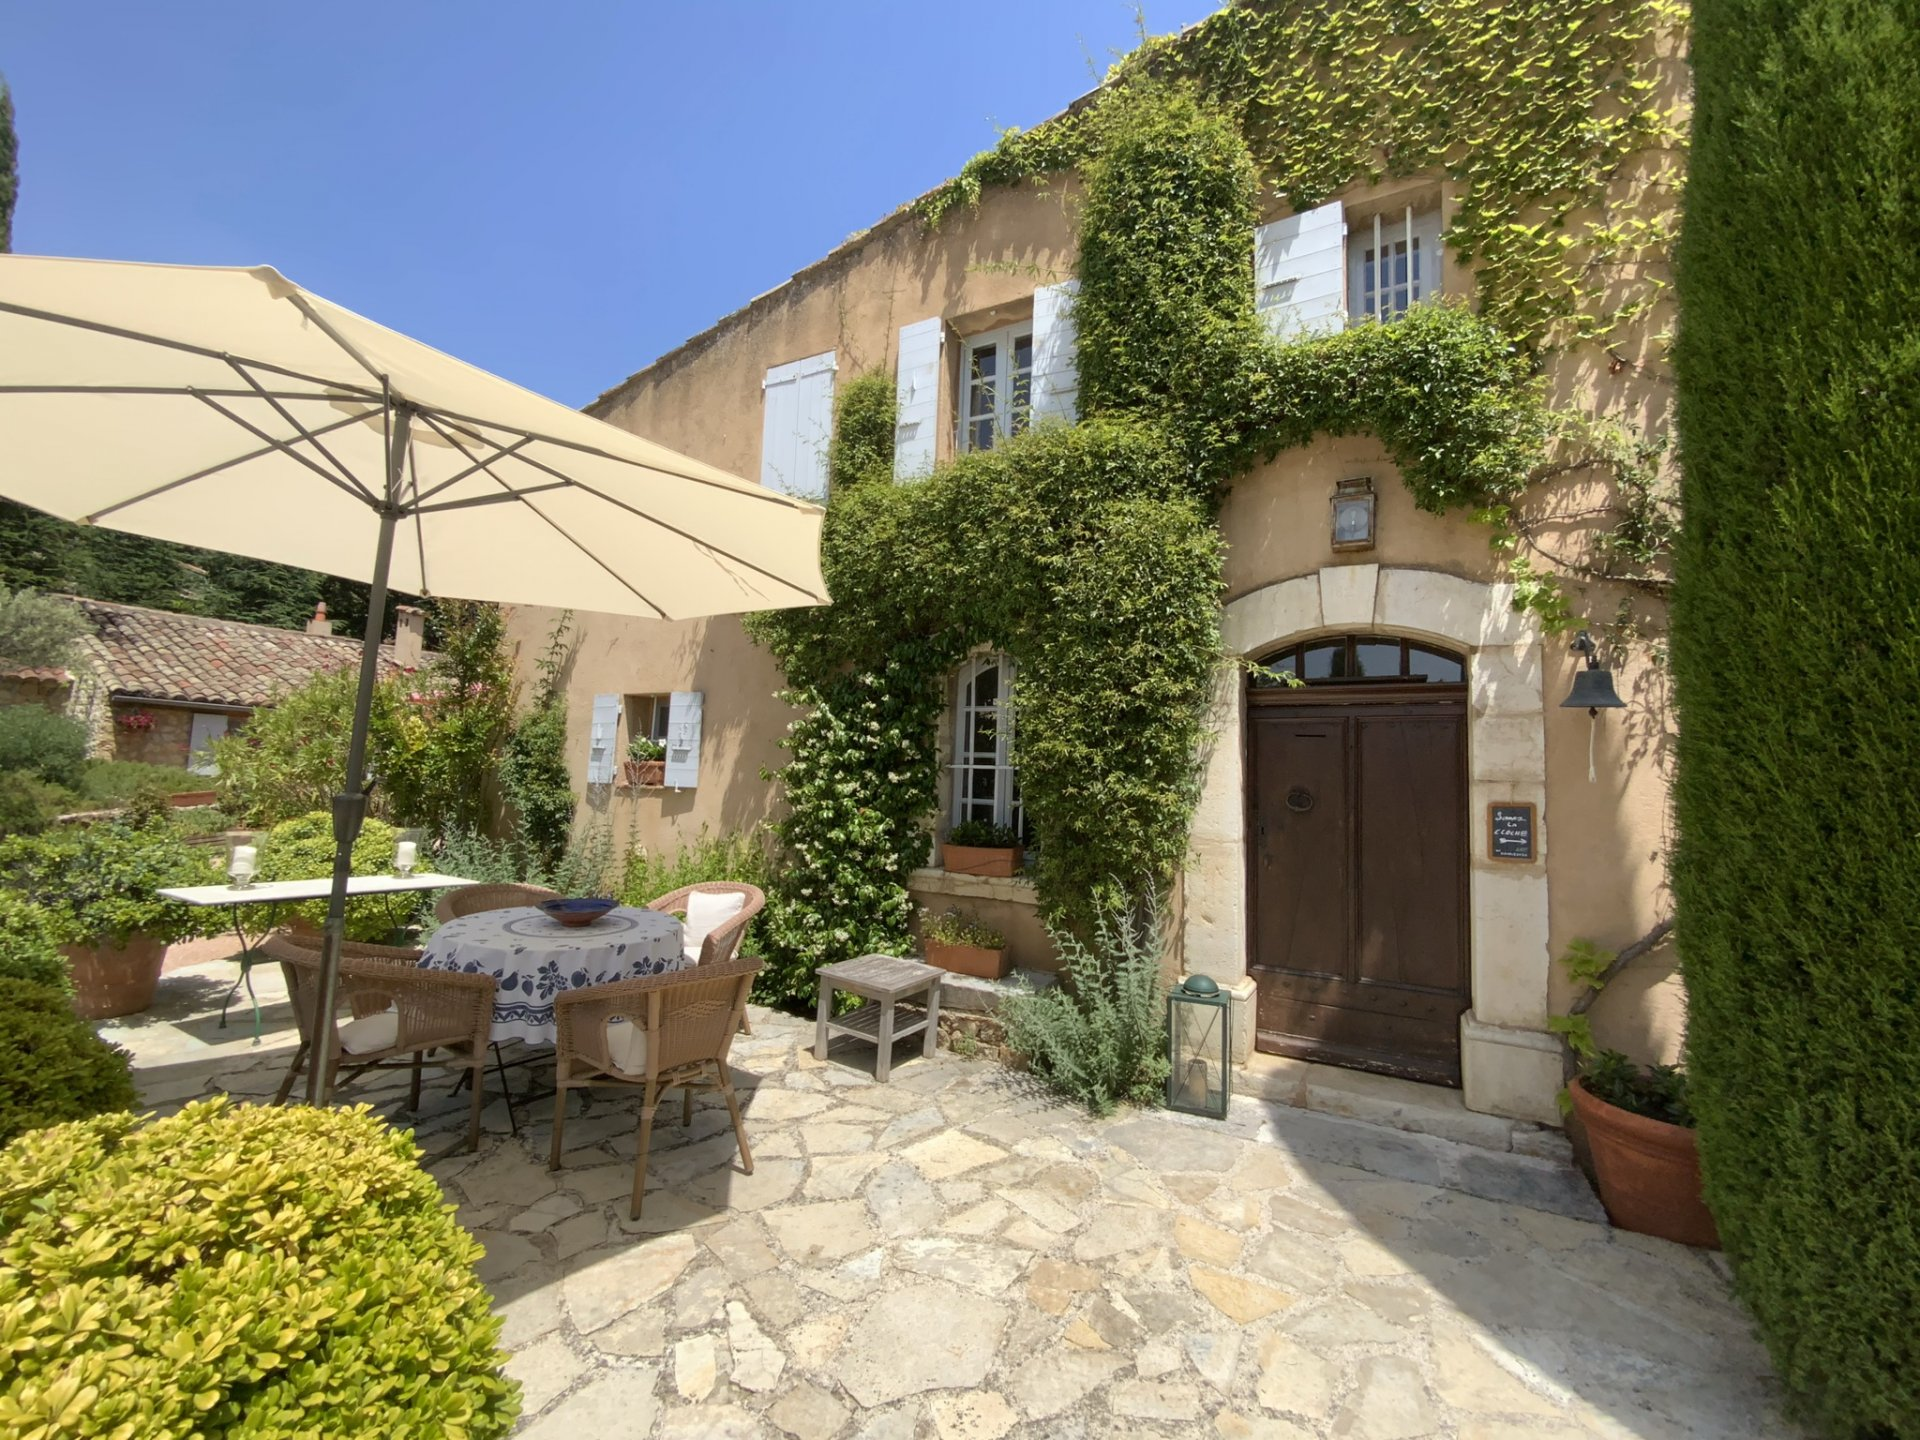 PROVENCE - CHARMING PROPERTY - 3.2 HECTARES